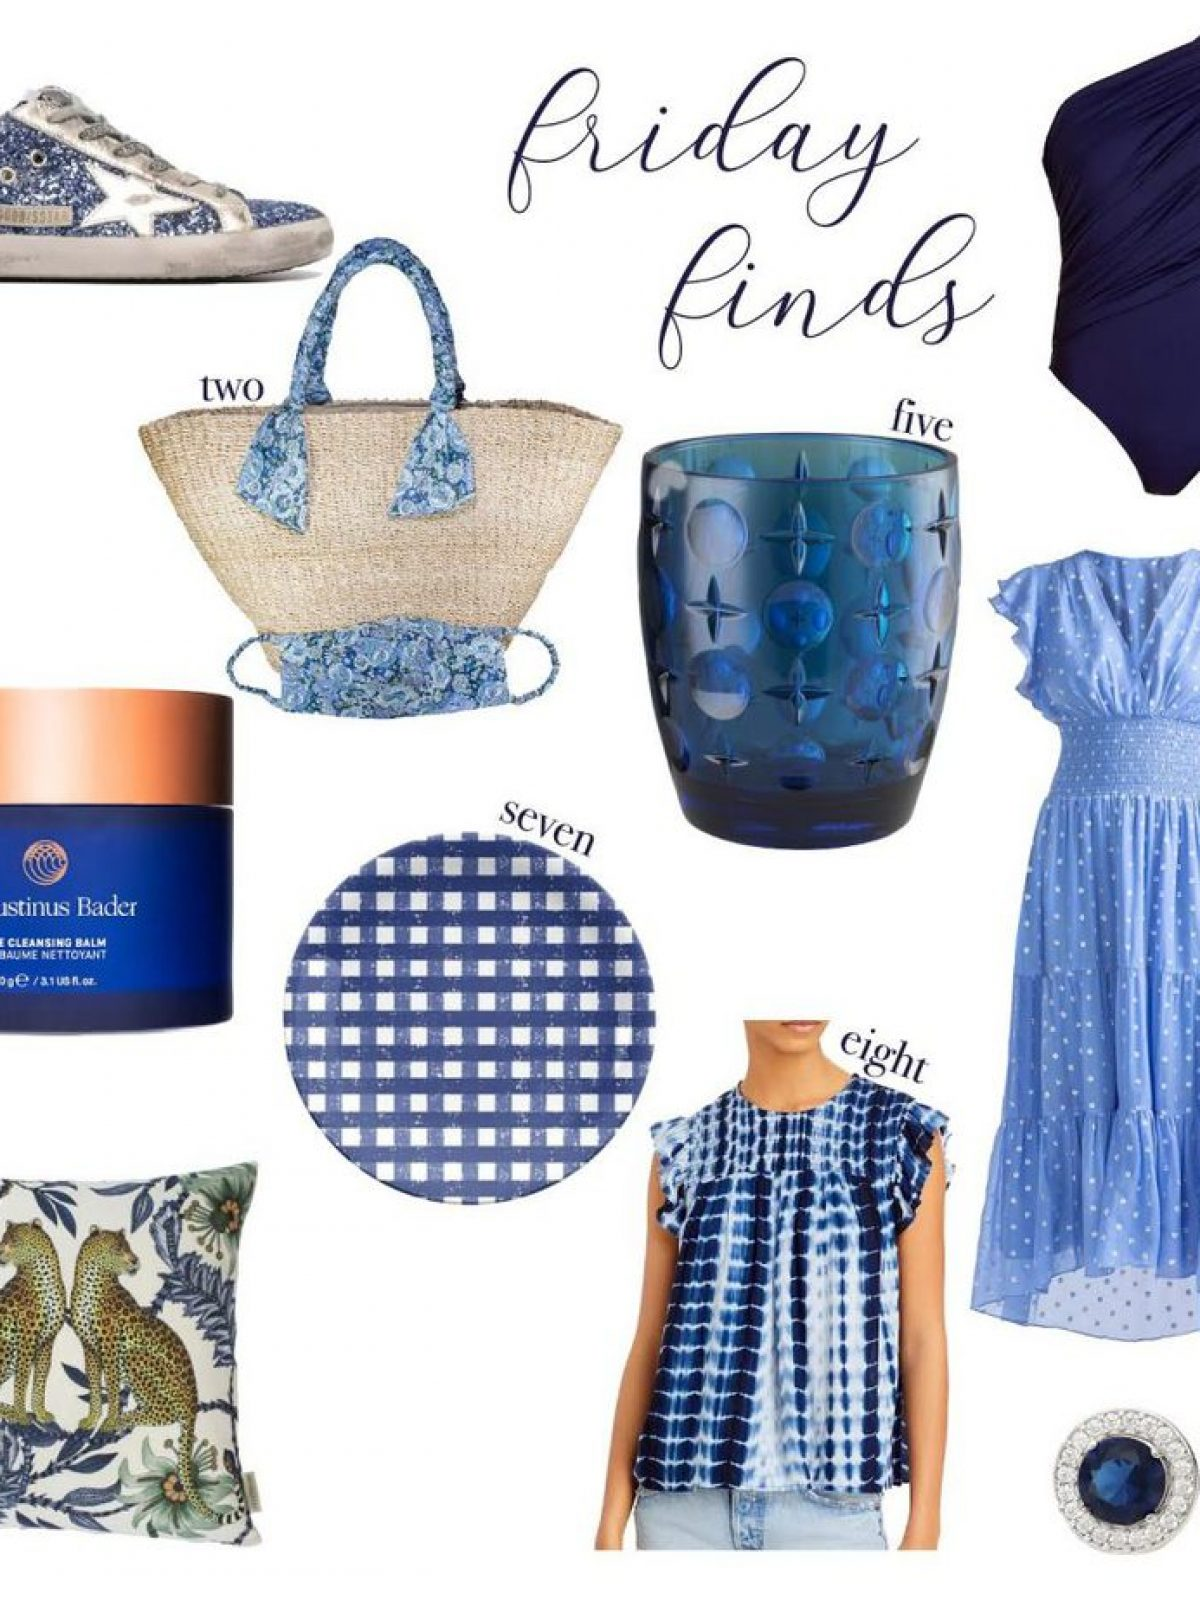 FRIDAY FINDS AND MEMORIAL DAY SALES